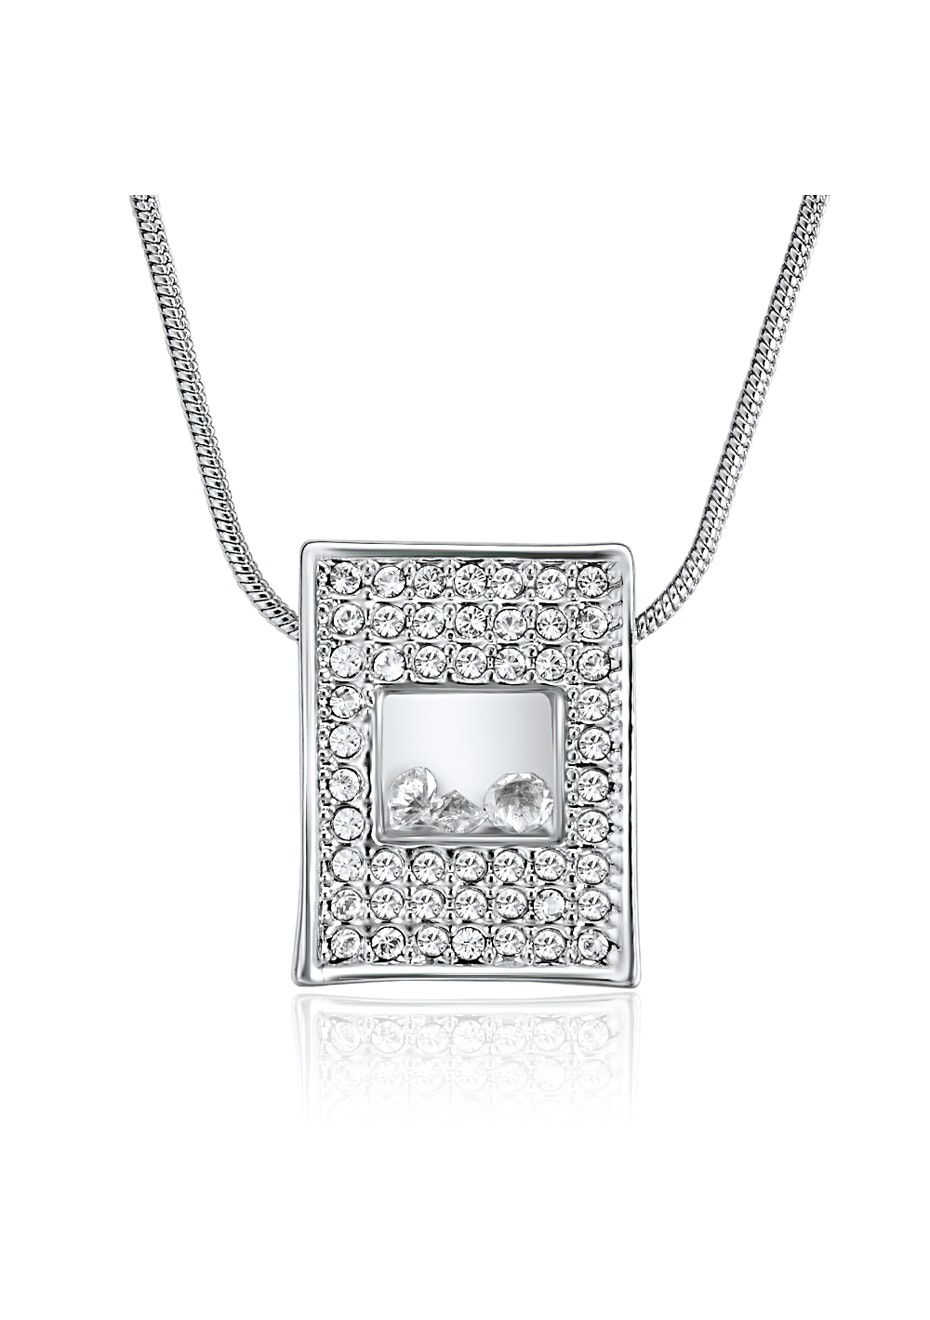 Pave & Display Case Pendant Necklace Embellished with Crystals from Swarovski